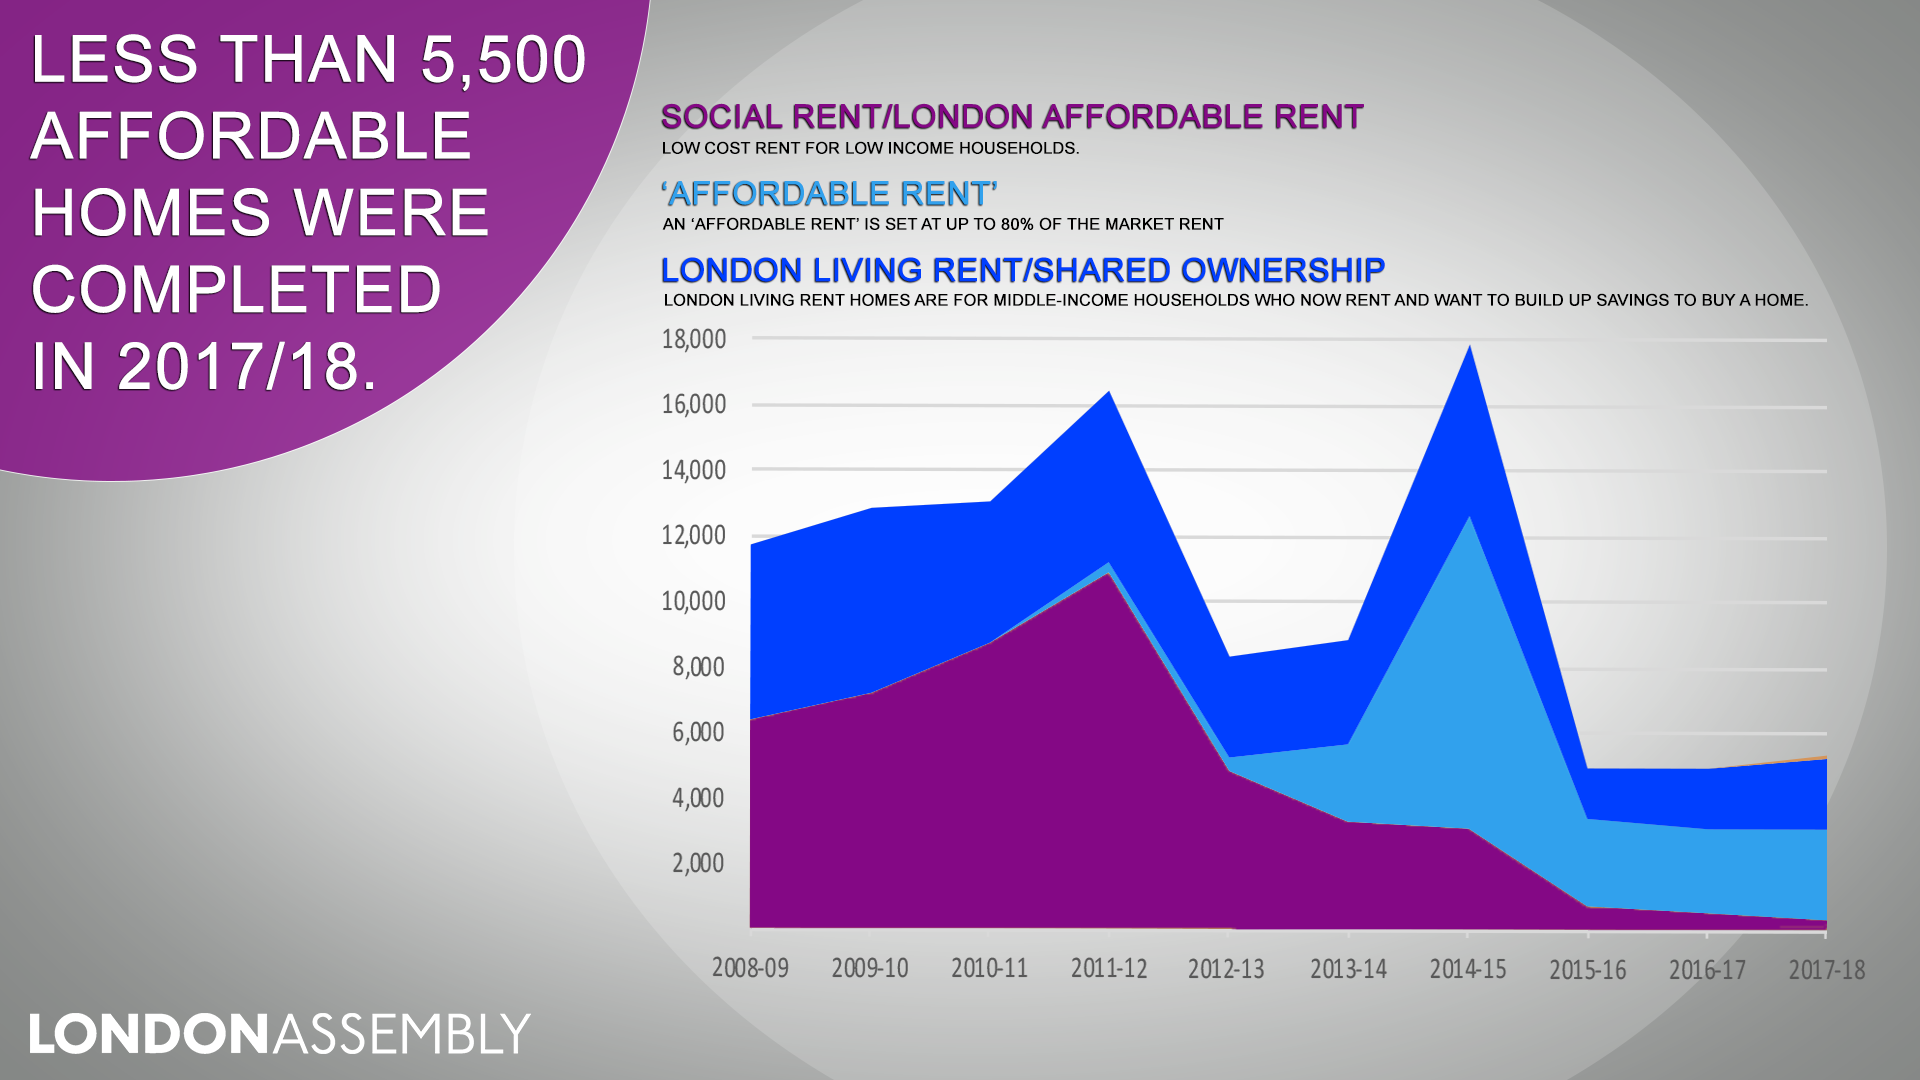 London affordable housing - new homes